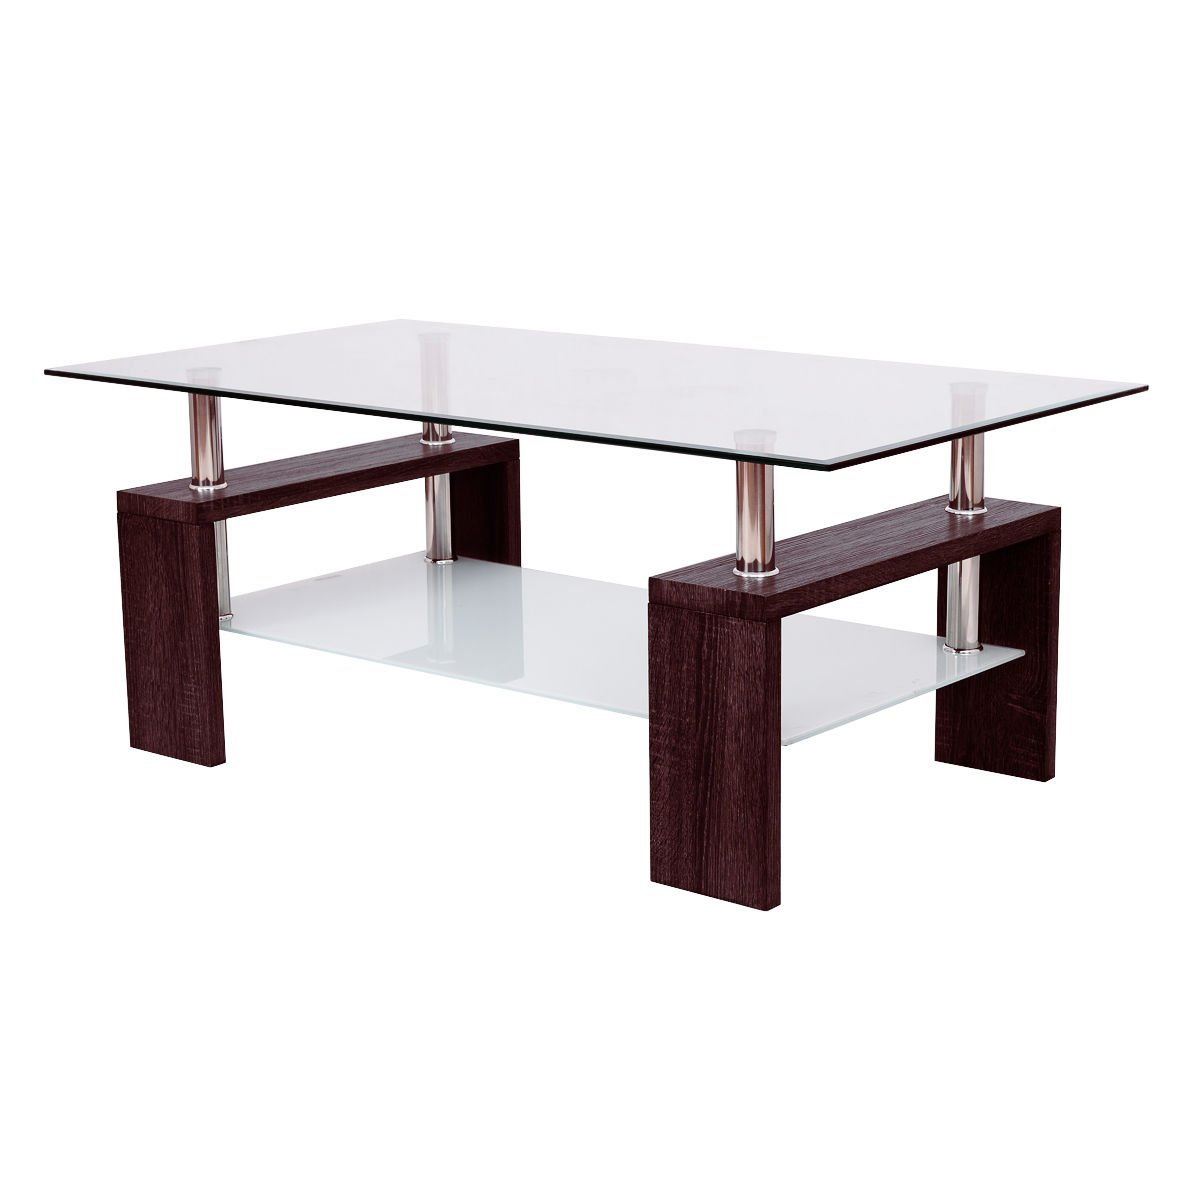 Amazon com rectangular tempered glass coffee table w shelf wood living room furniture allblessings kitchen dining